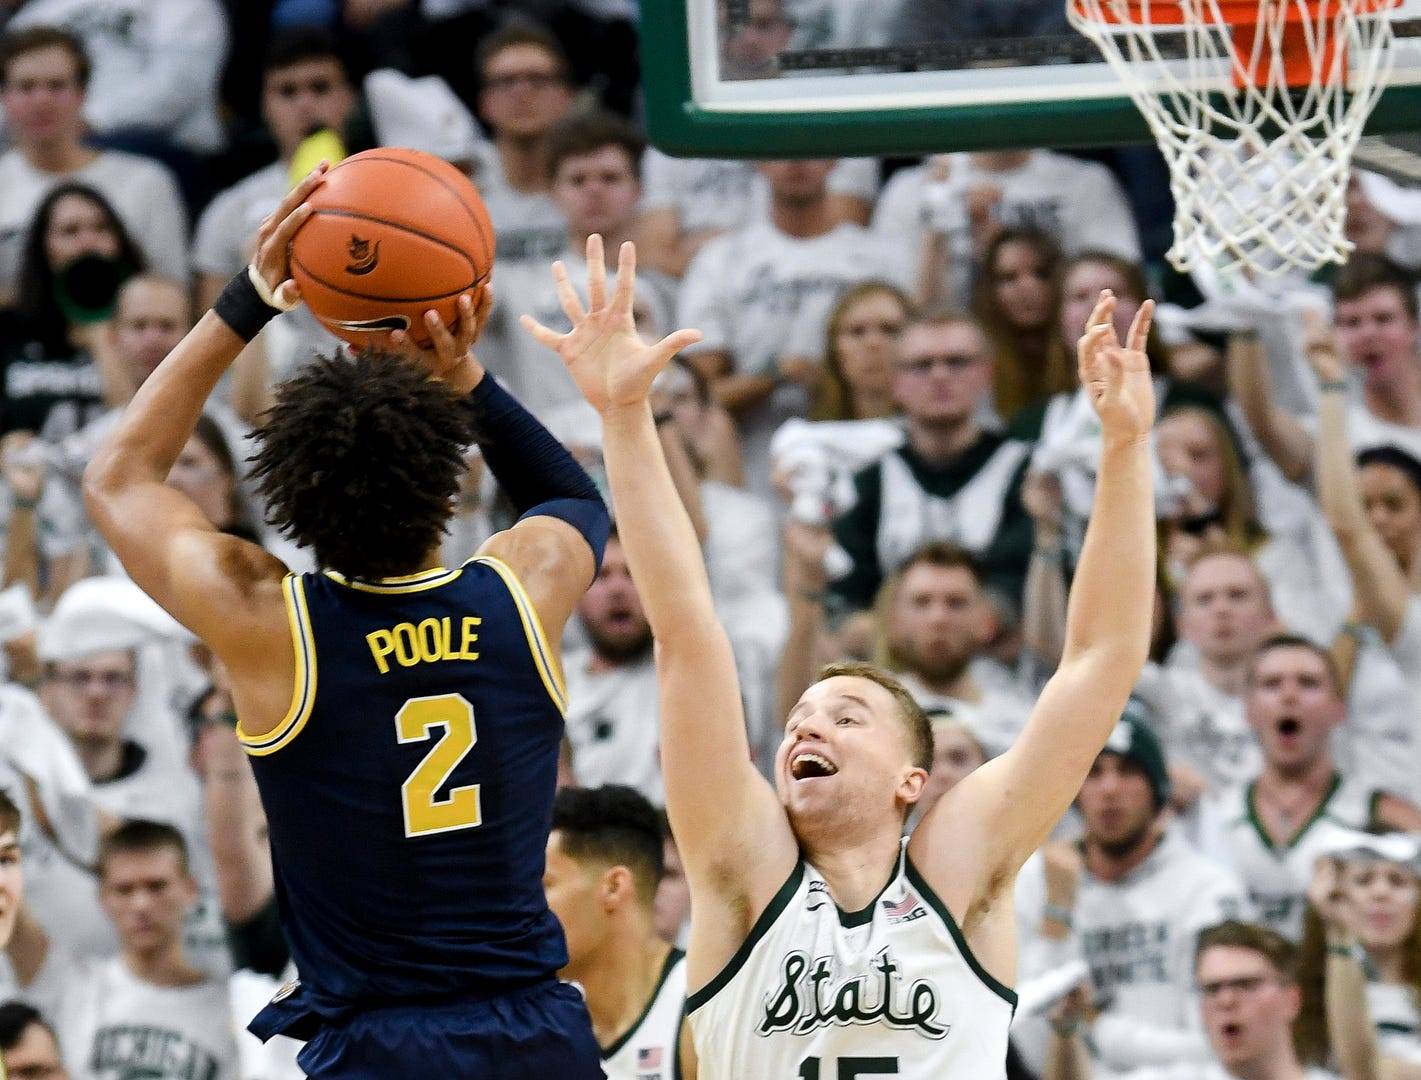 Michigan State's Thomas Kithier, right, pressures Michigan's Jordan Poole on a shot during the first half on Saturday, March 9, 2019, at the Breslin Center in East Lansing.